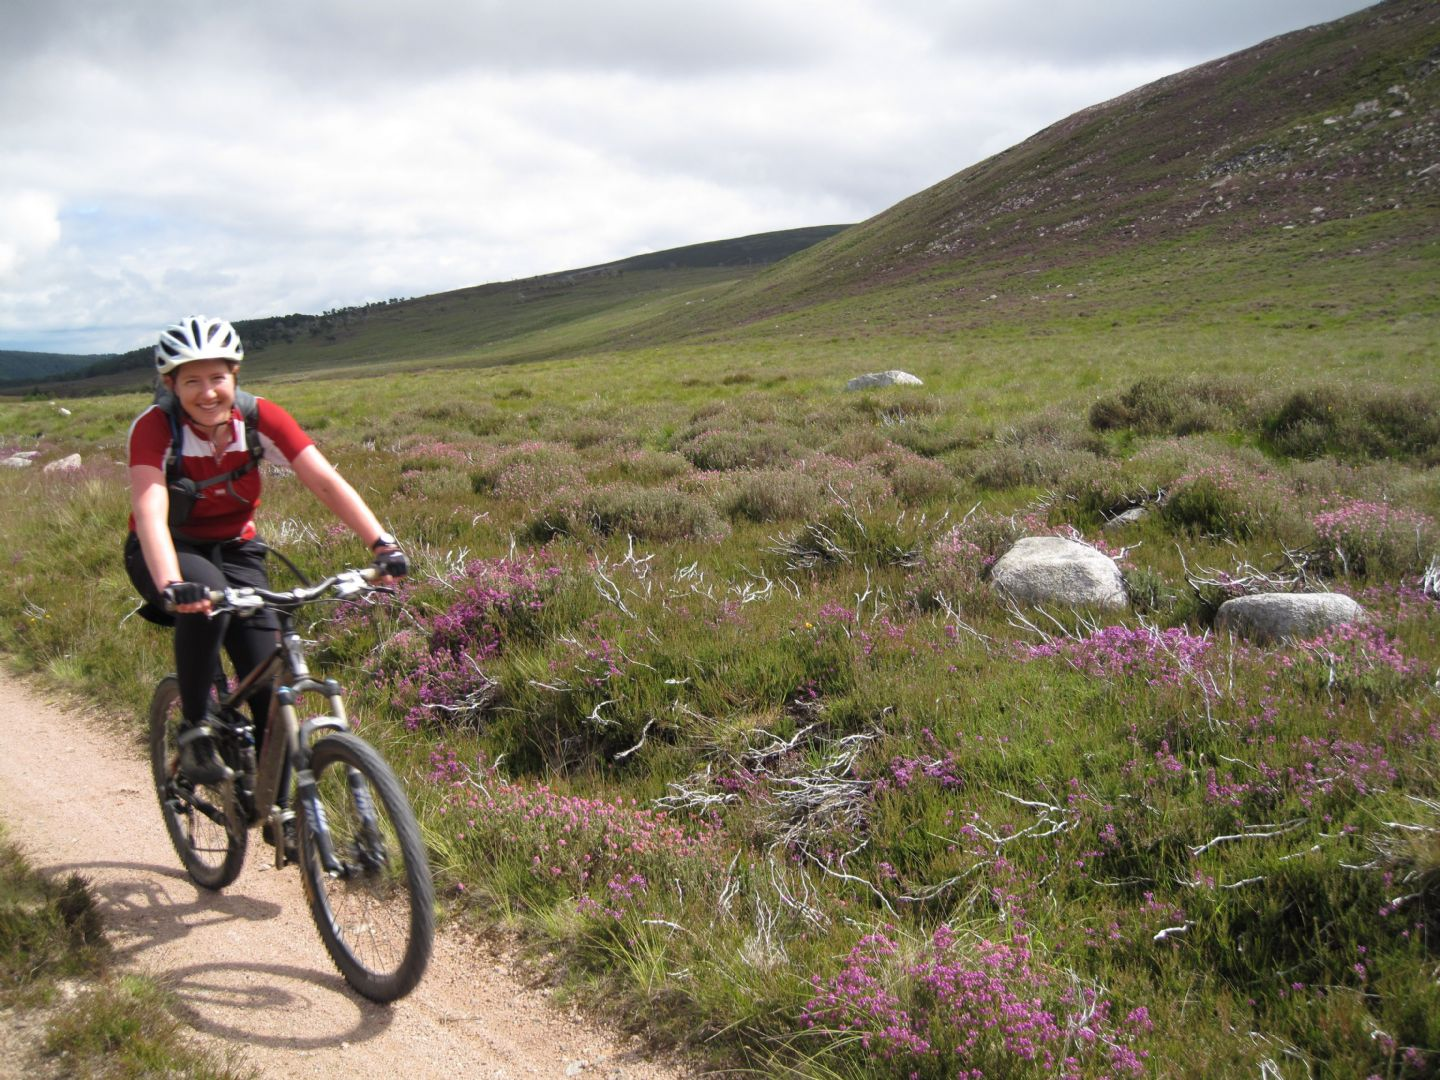 highlands-mountain-passes-sottish-biking-holiday.jpg - Scotland - Celtic Crossing - Guided Mountain Bike Holiday - Mountain Biking